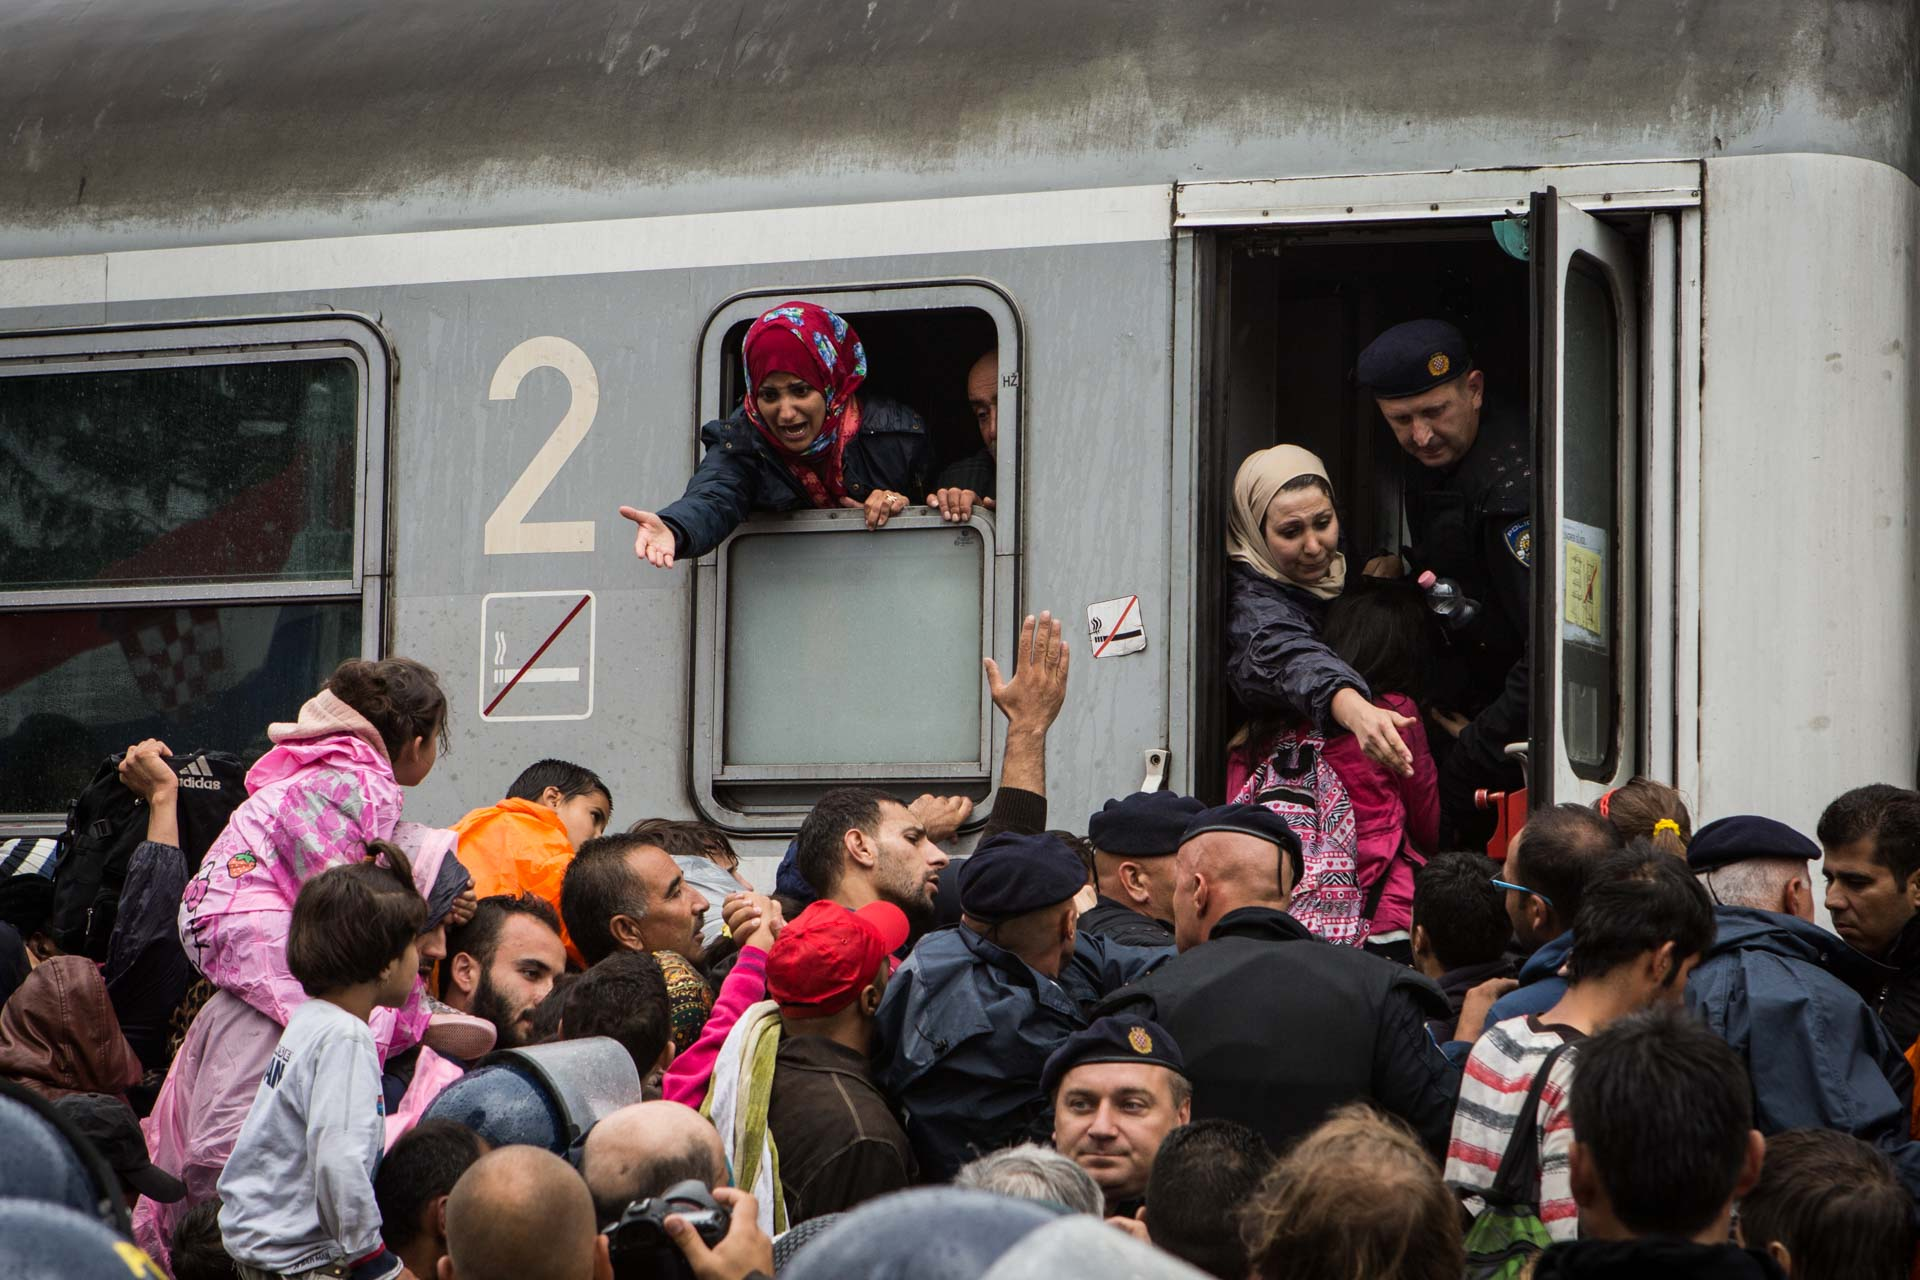 A mother on a train to Slovenia is screaming at the top of her lungs to get her child trapped in a crows of people.